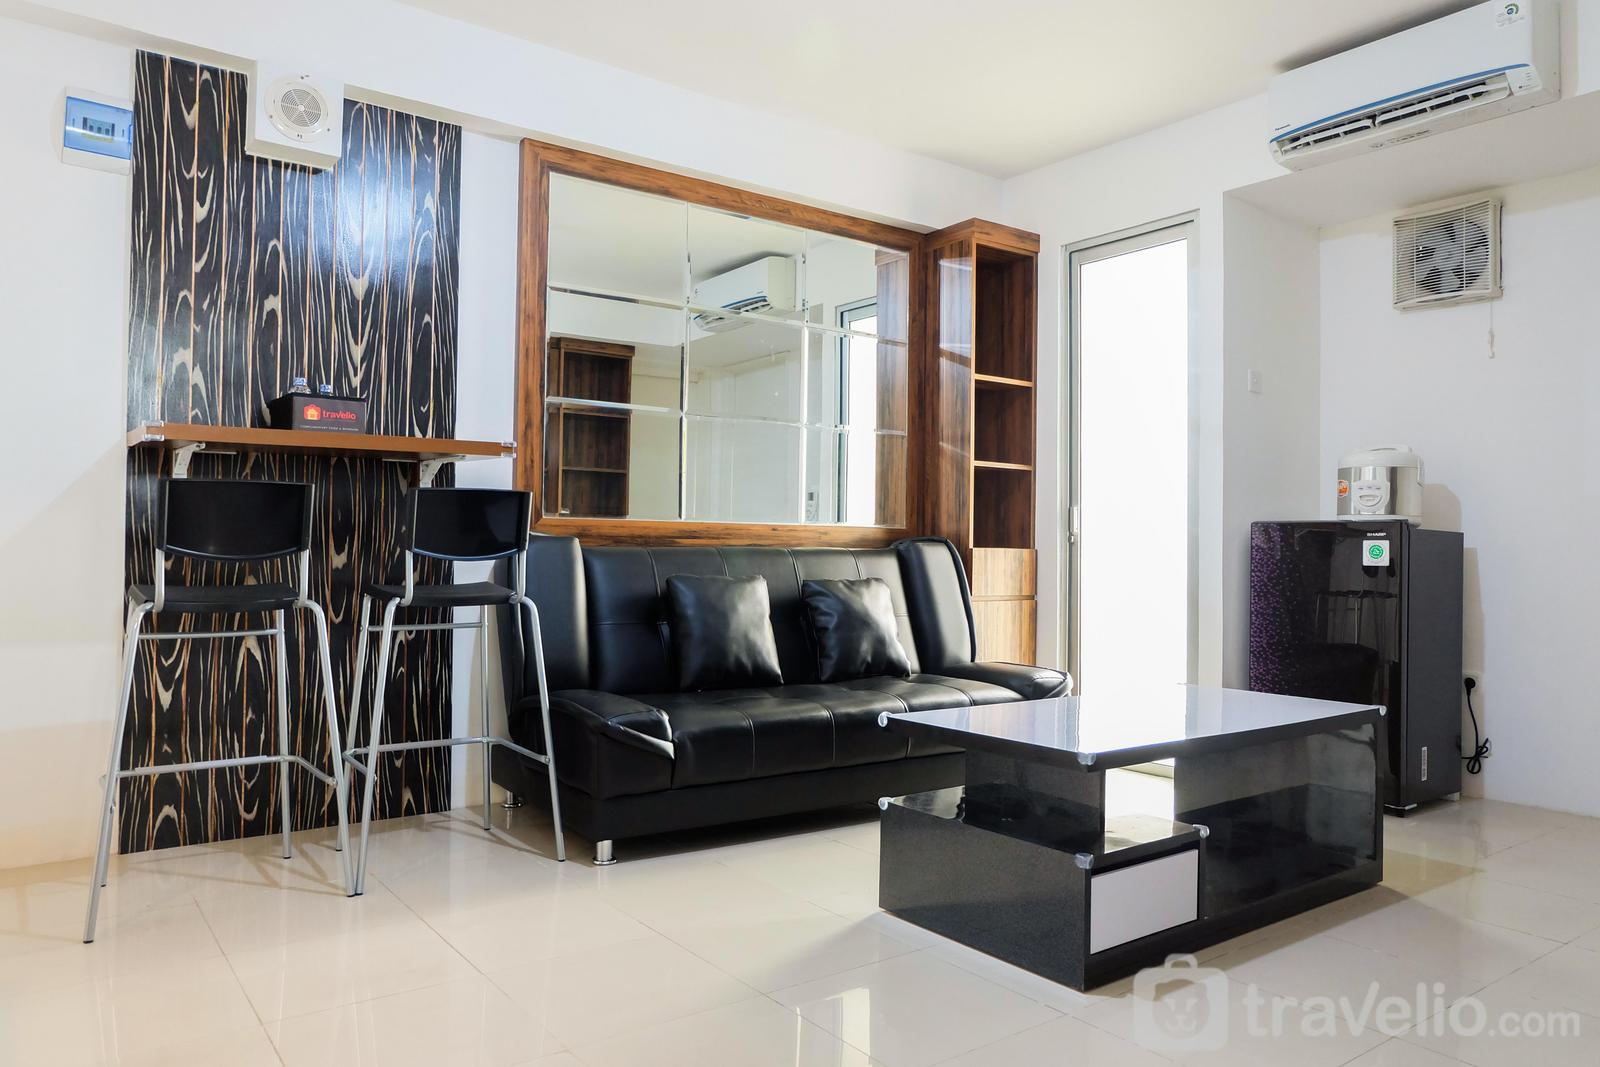 Bassura City Cipinang - Spacious and Clean 3BR Bassura Apartment By Travelio